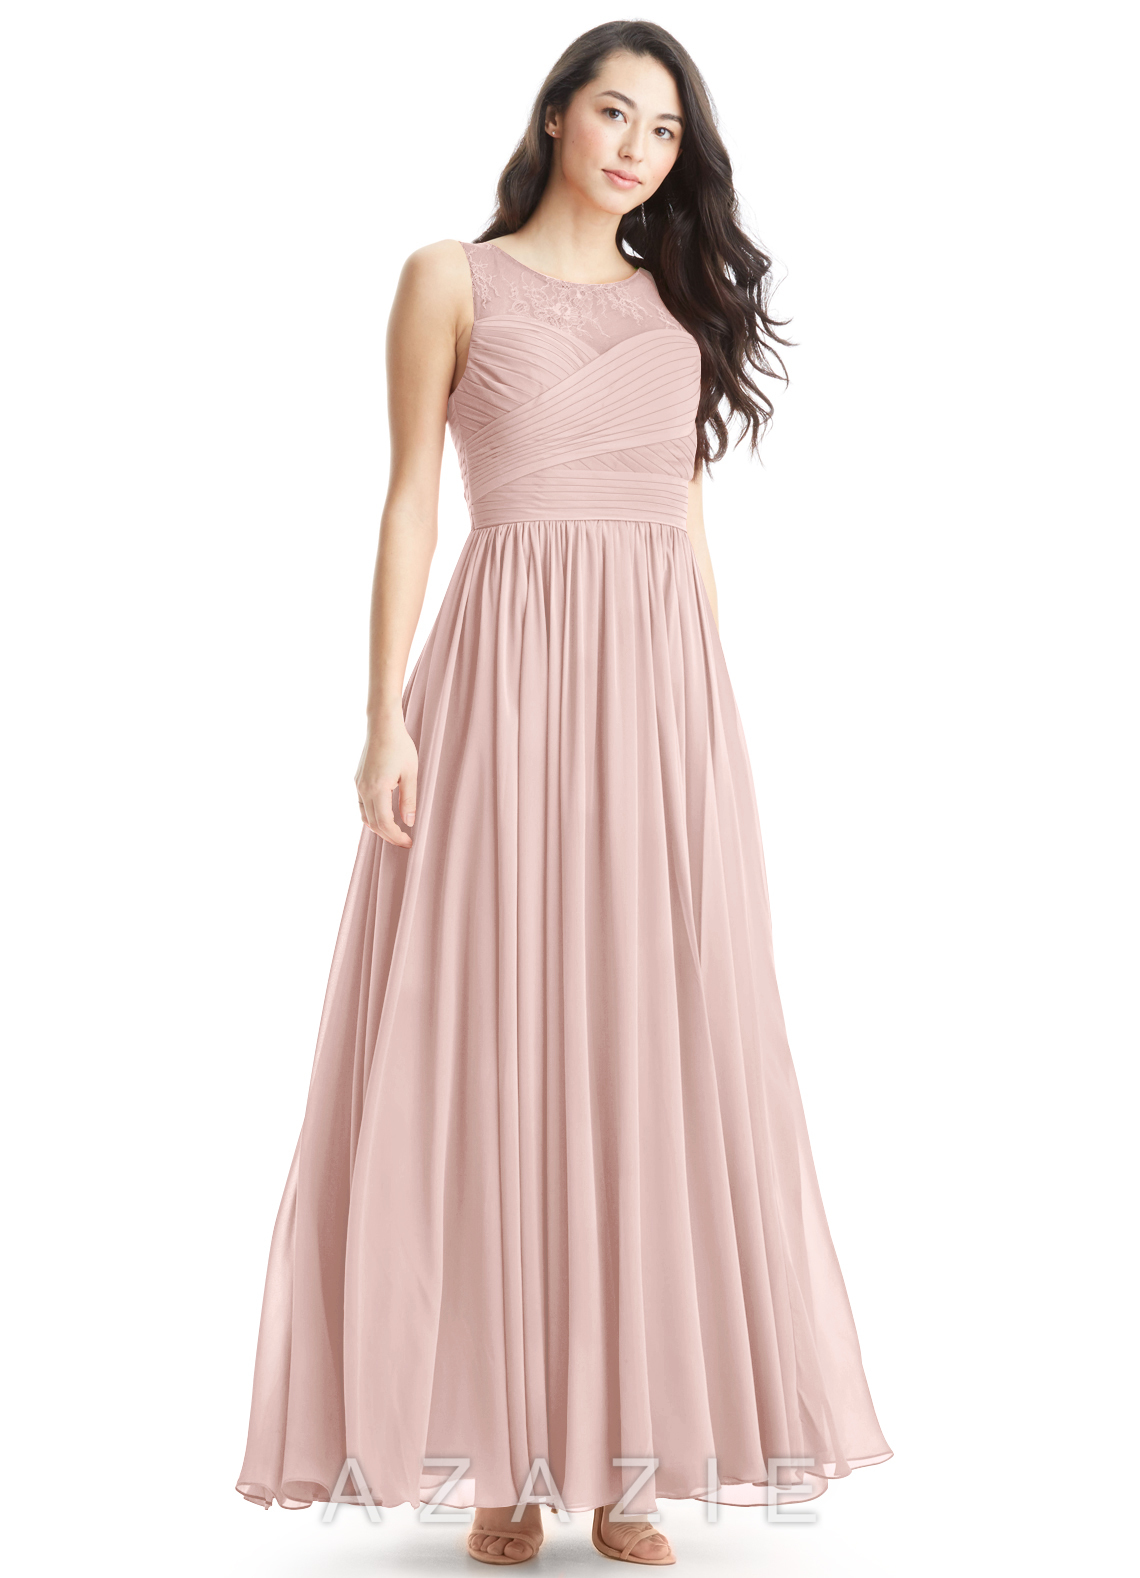 Azazie aliya bridesmaid dress azazie color dusty rose ombrellifo Image collections